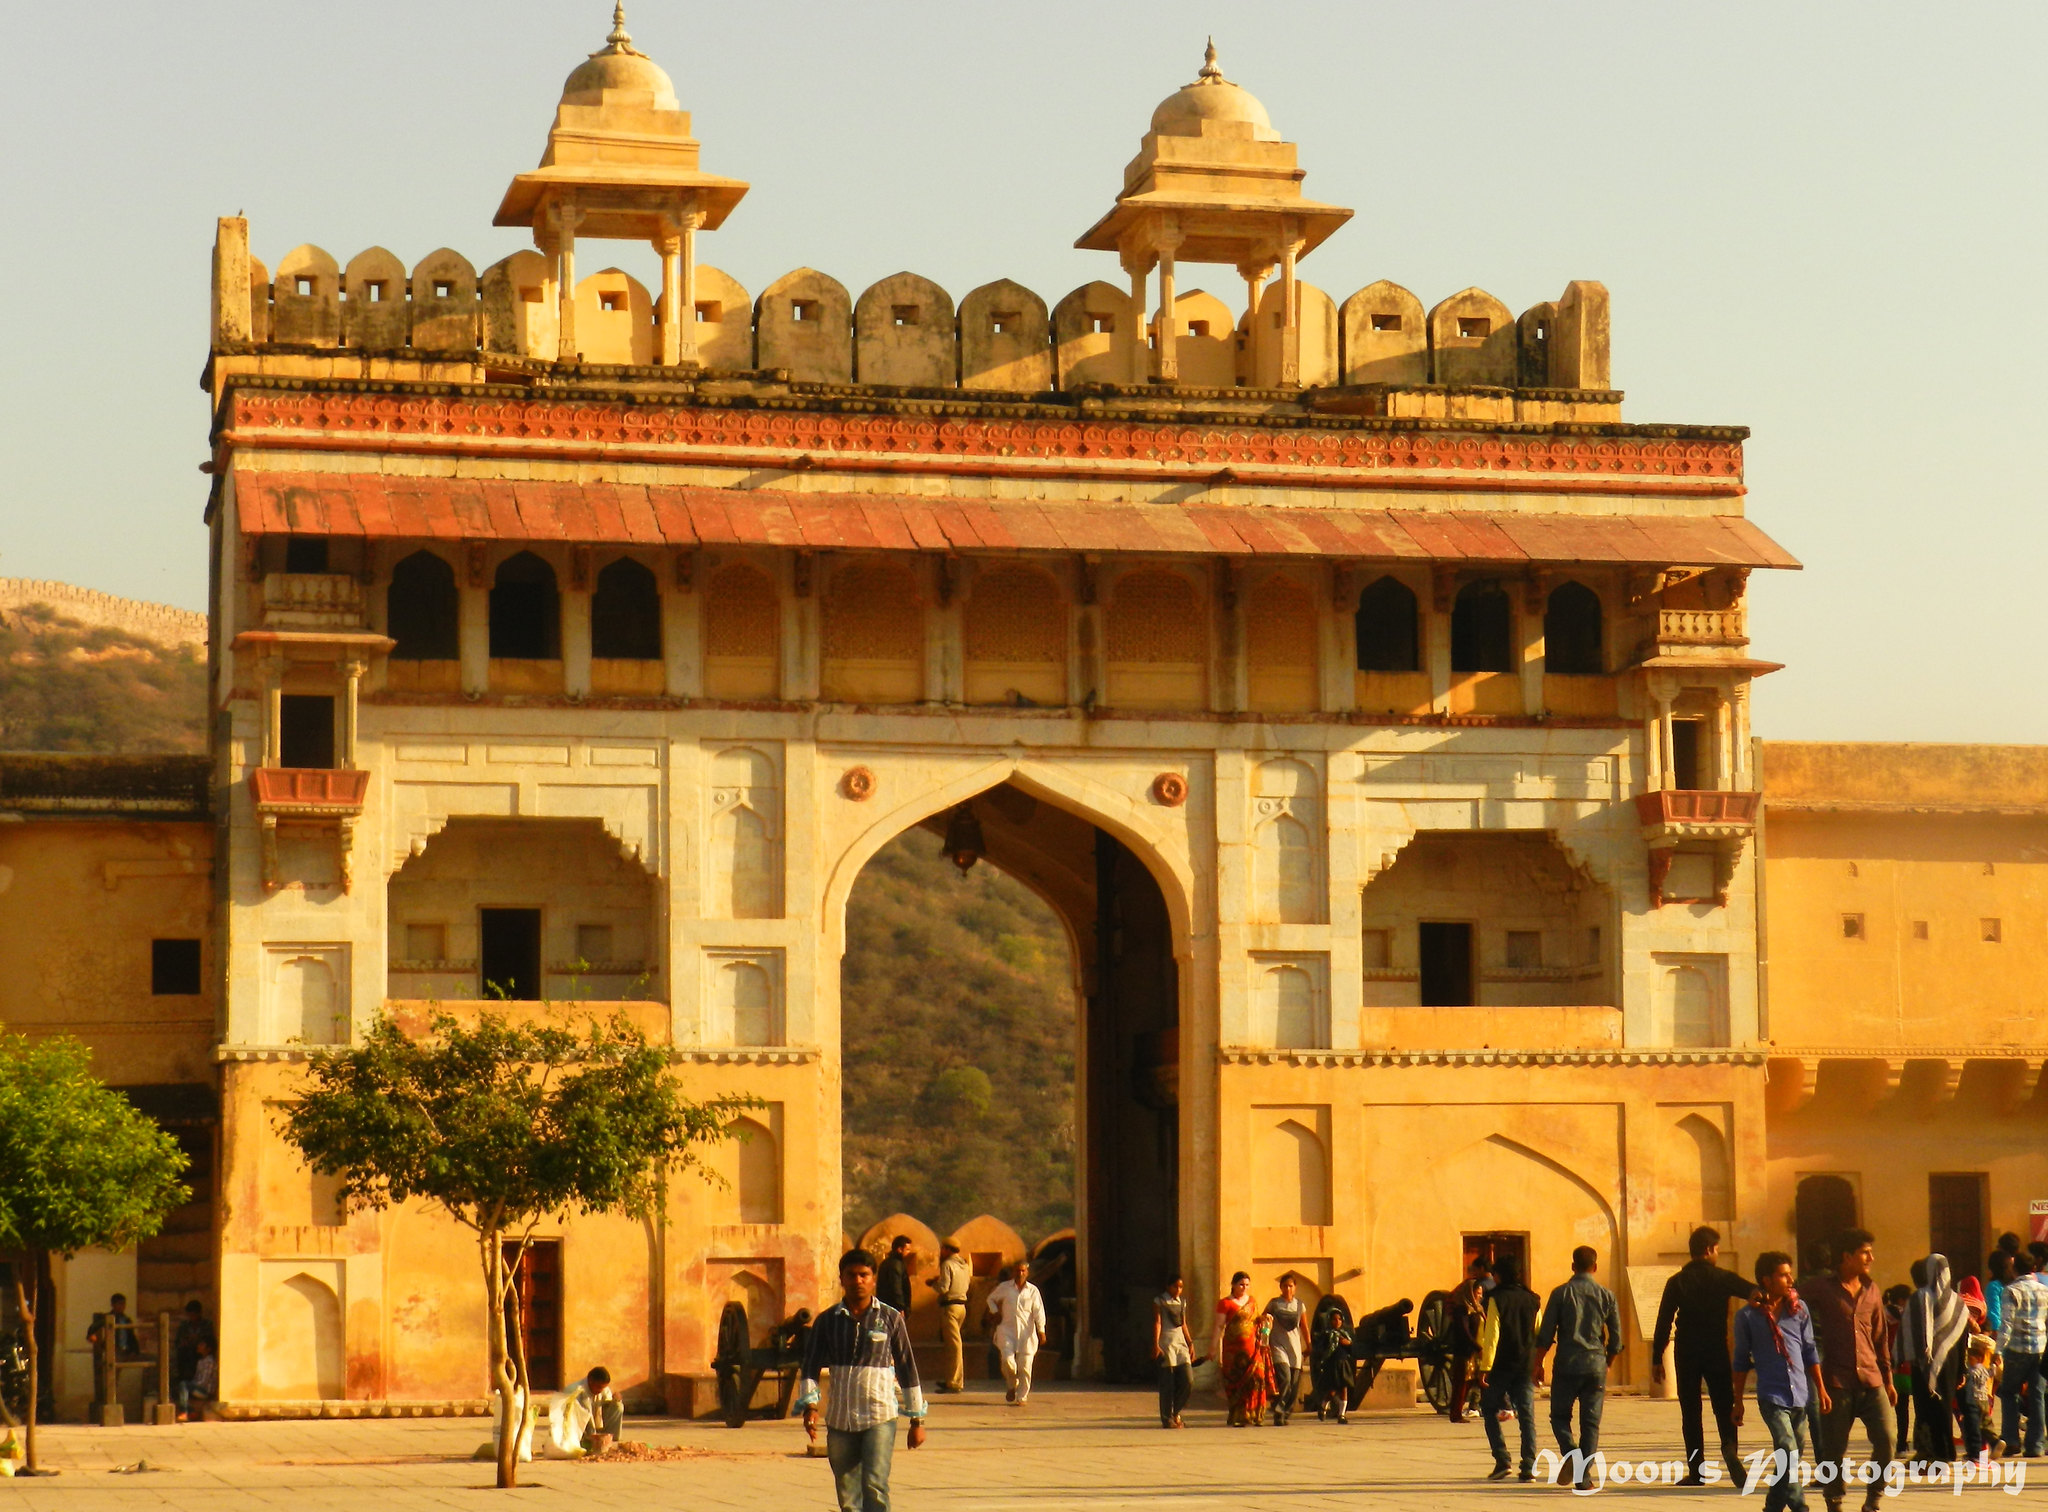 chandra pole, moon gate, amer palace, amer fort, jaipur